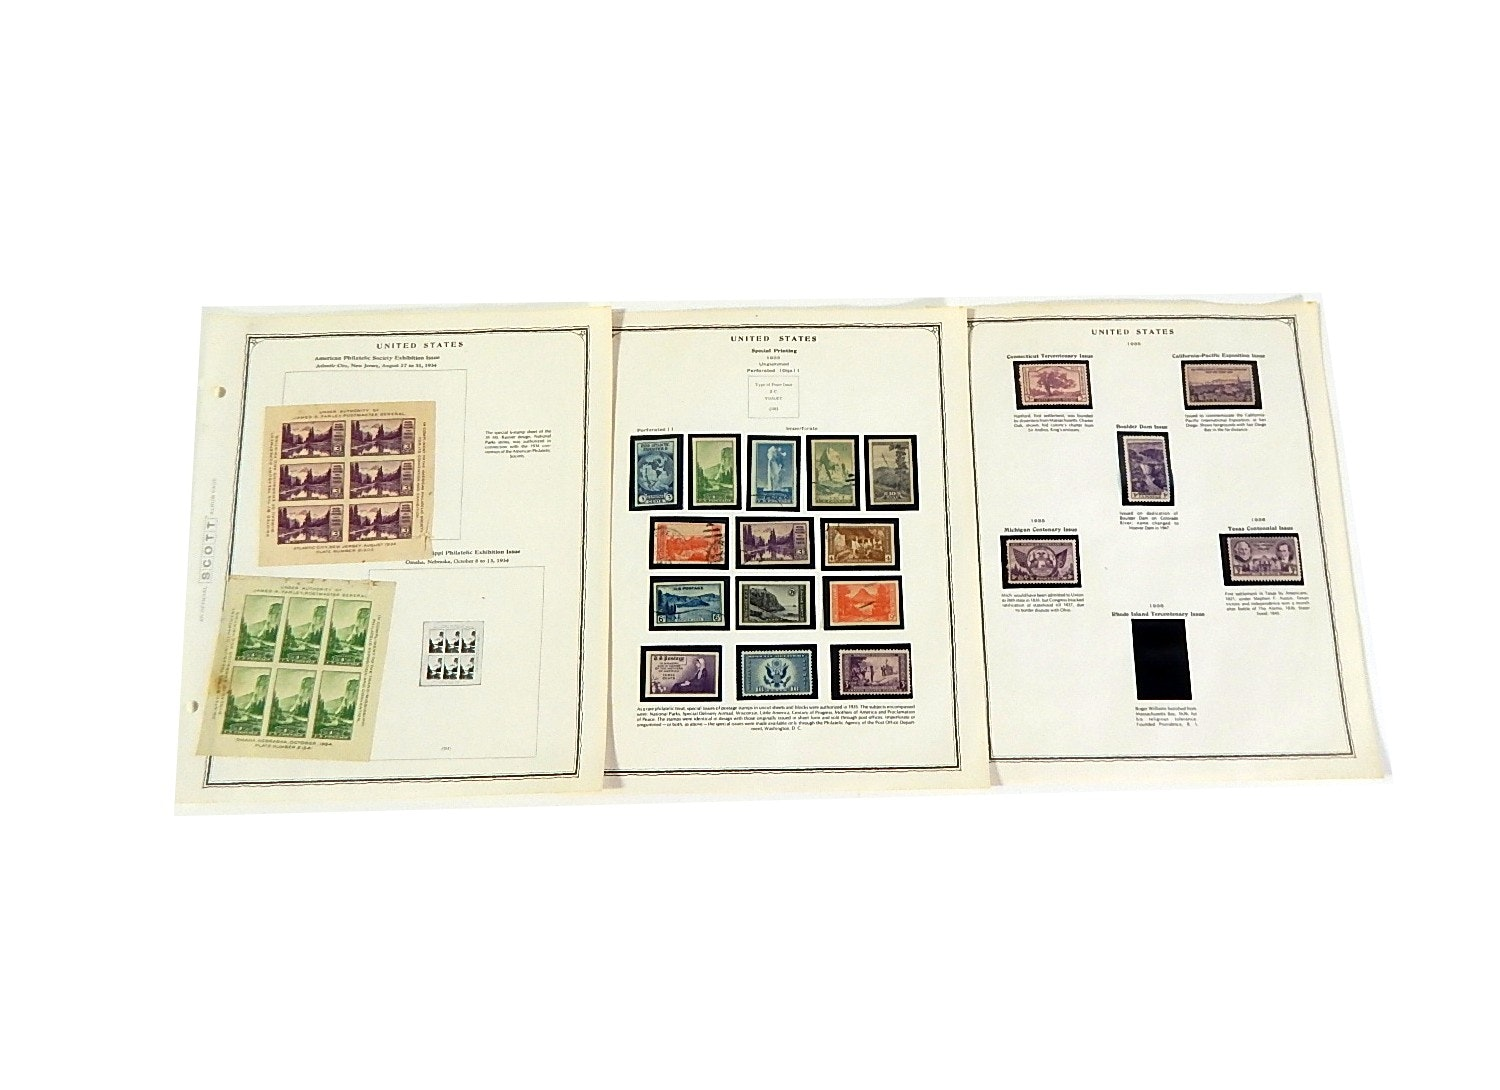 Early 1900s Stamp Collection from Scott Collectors Book - 1934 to 1935